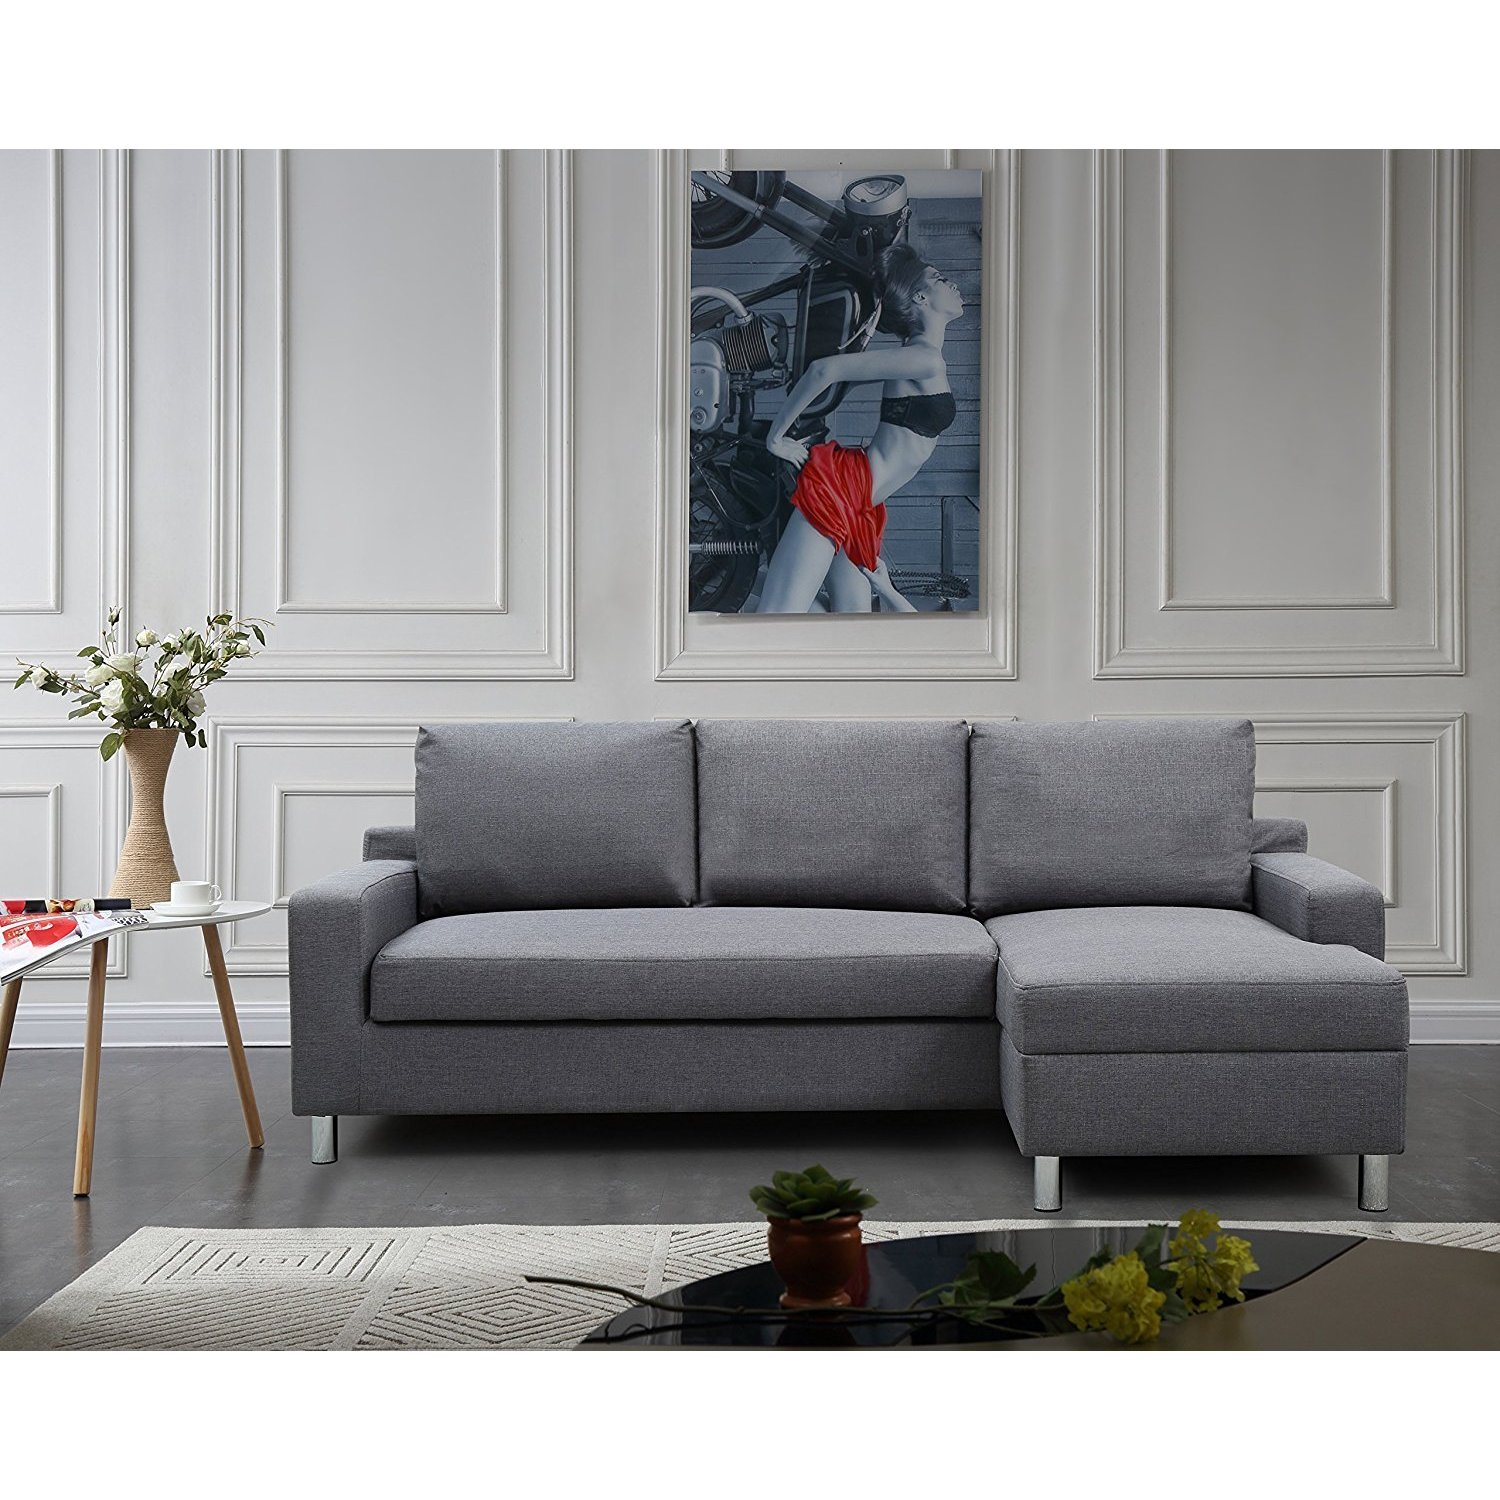 Sectional Pull Out Couch Us Pride Furniture Hampton Linen Fabric Sectional Sofa With Pull Out Bed